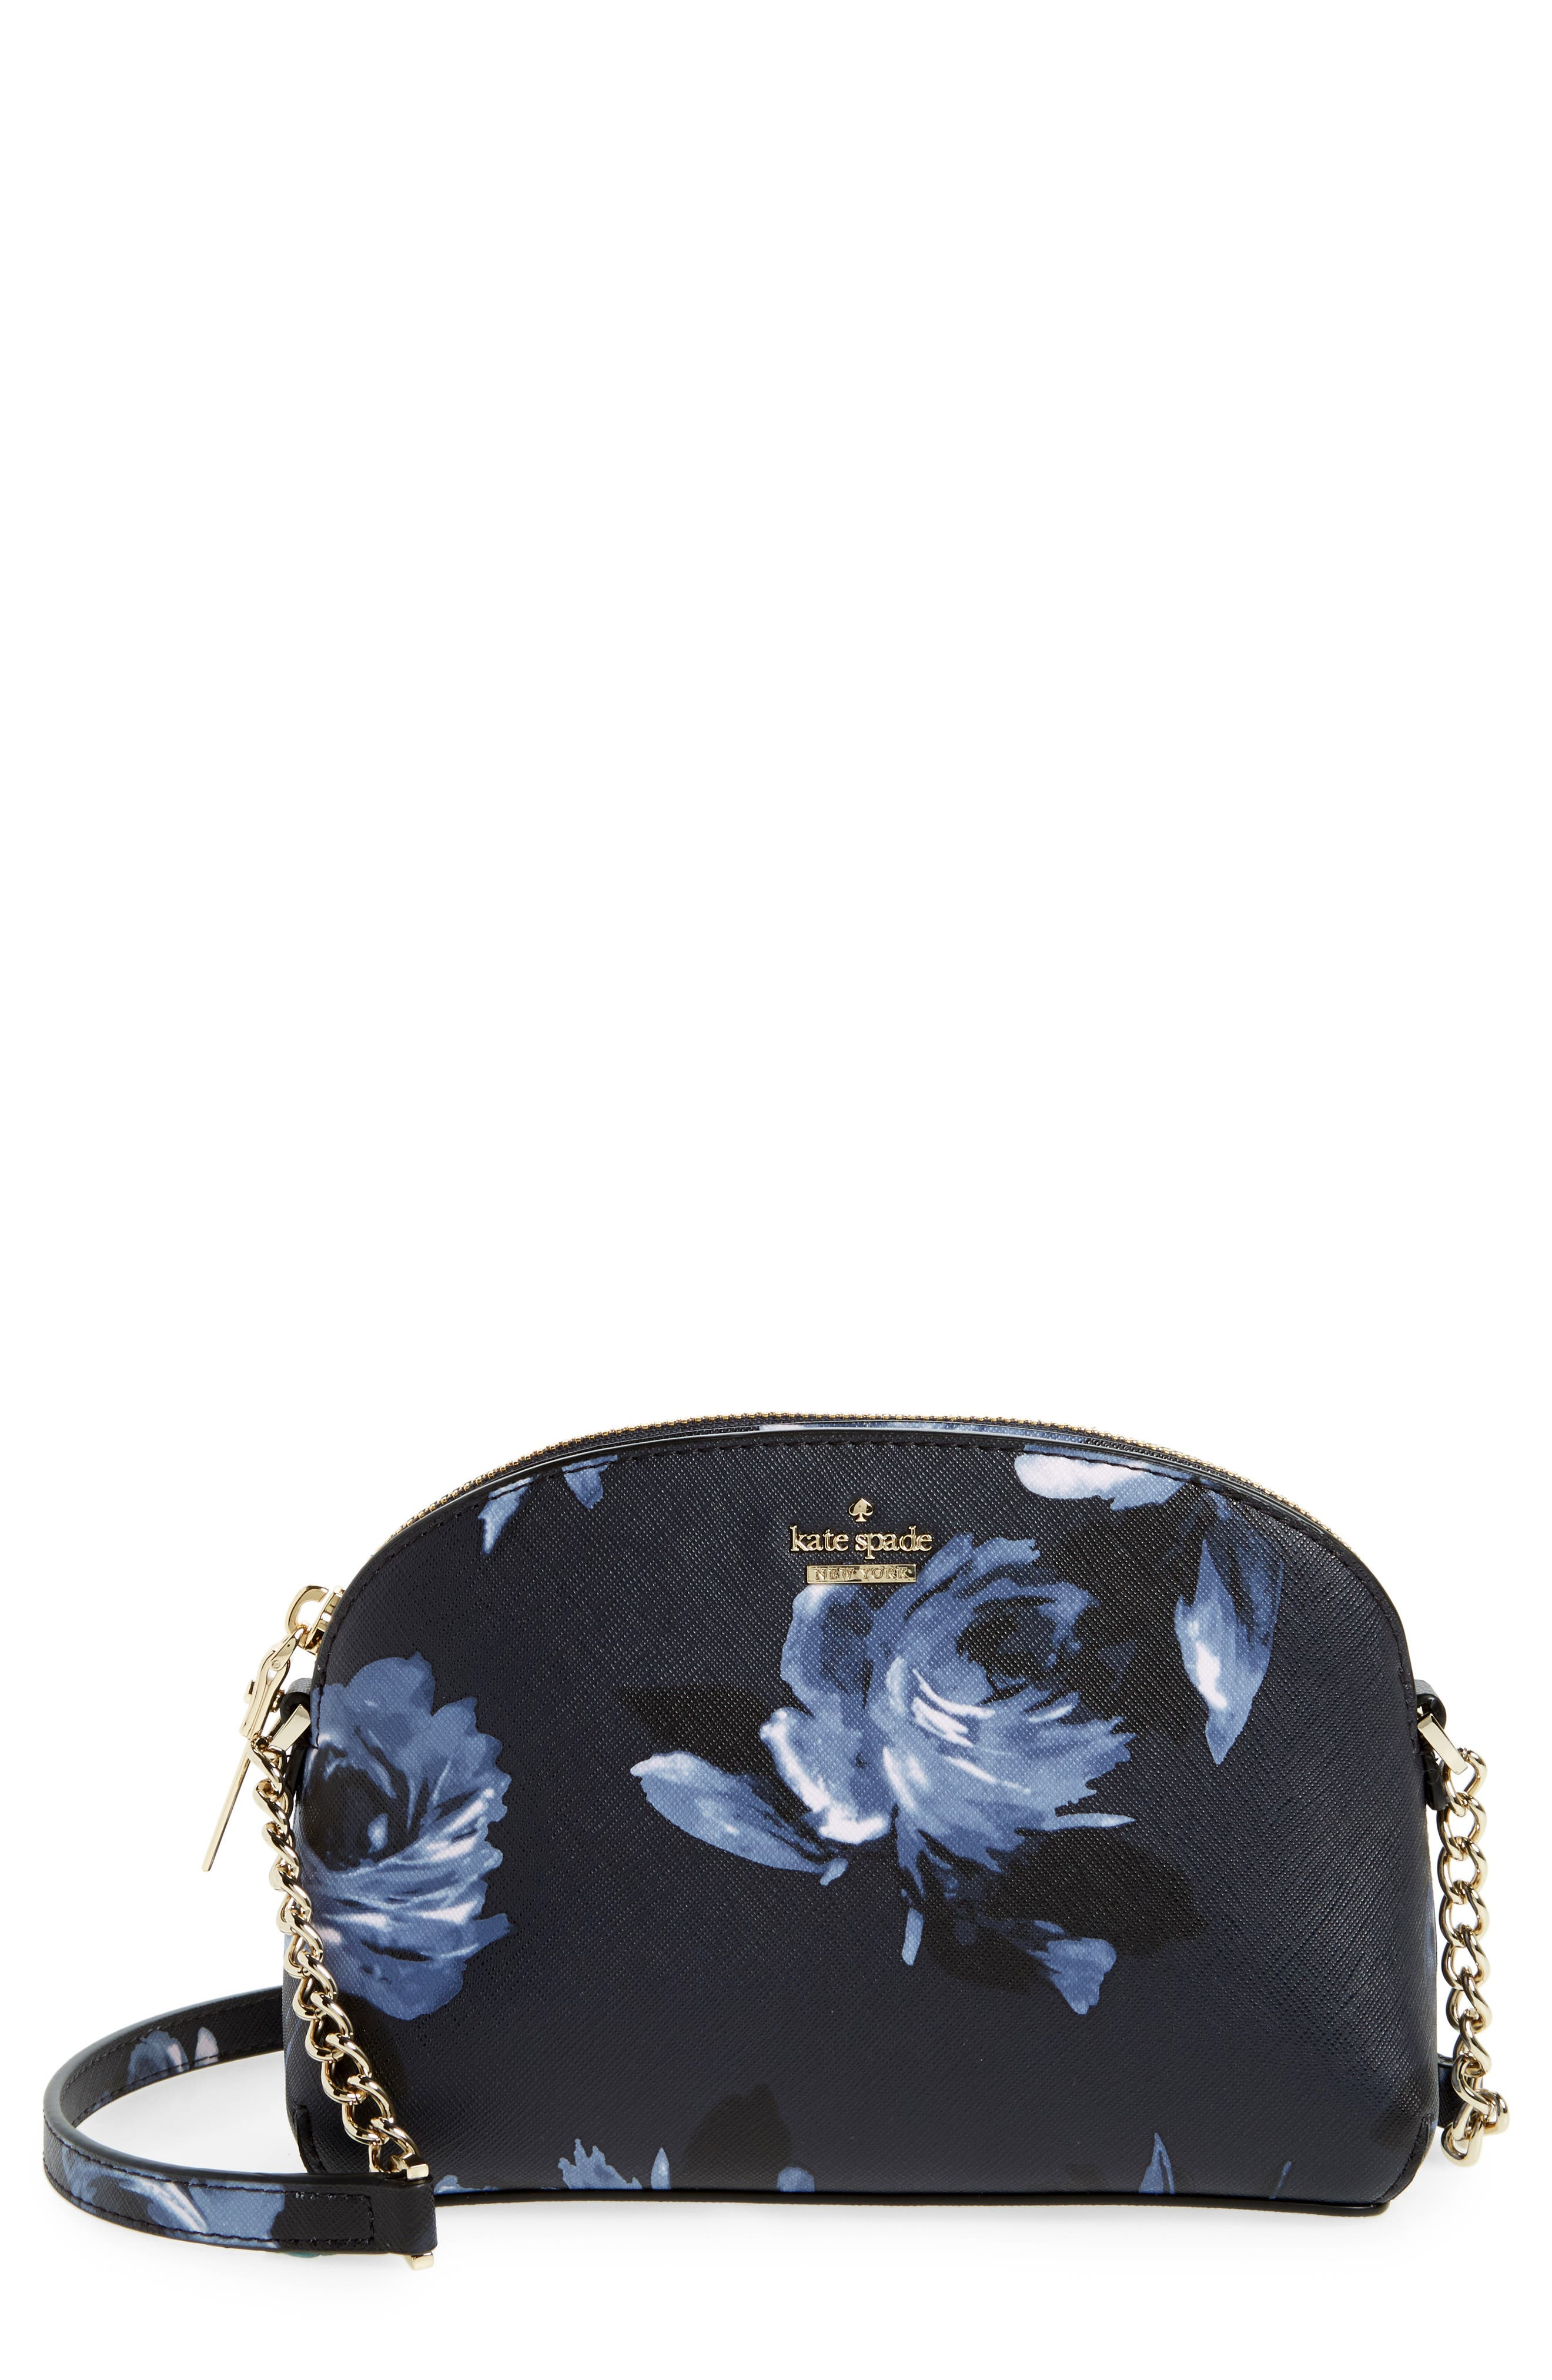 Main Image - kate spade new york cameron street rose - hilli leather crossbody bag